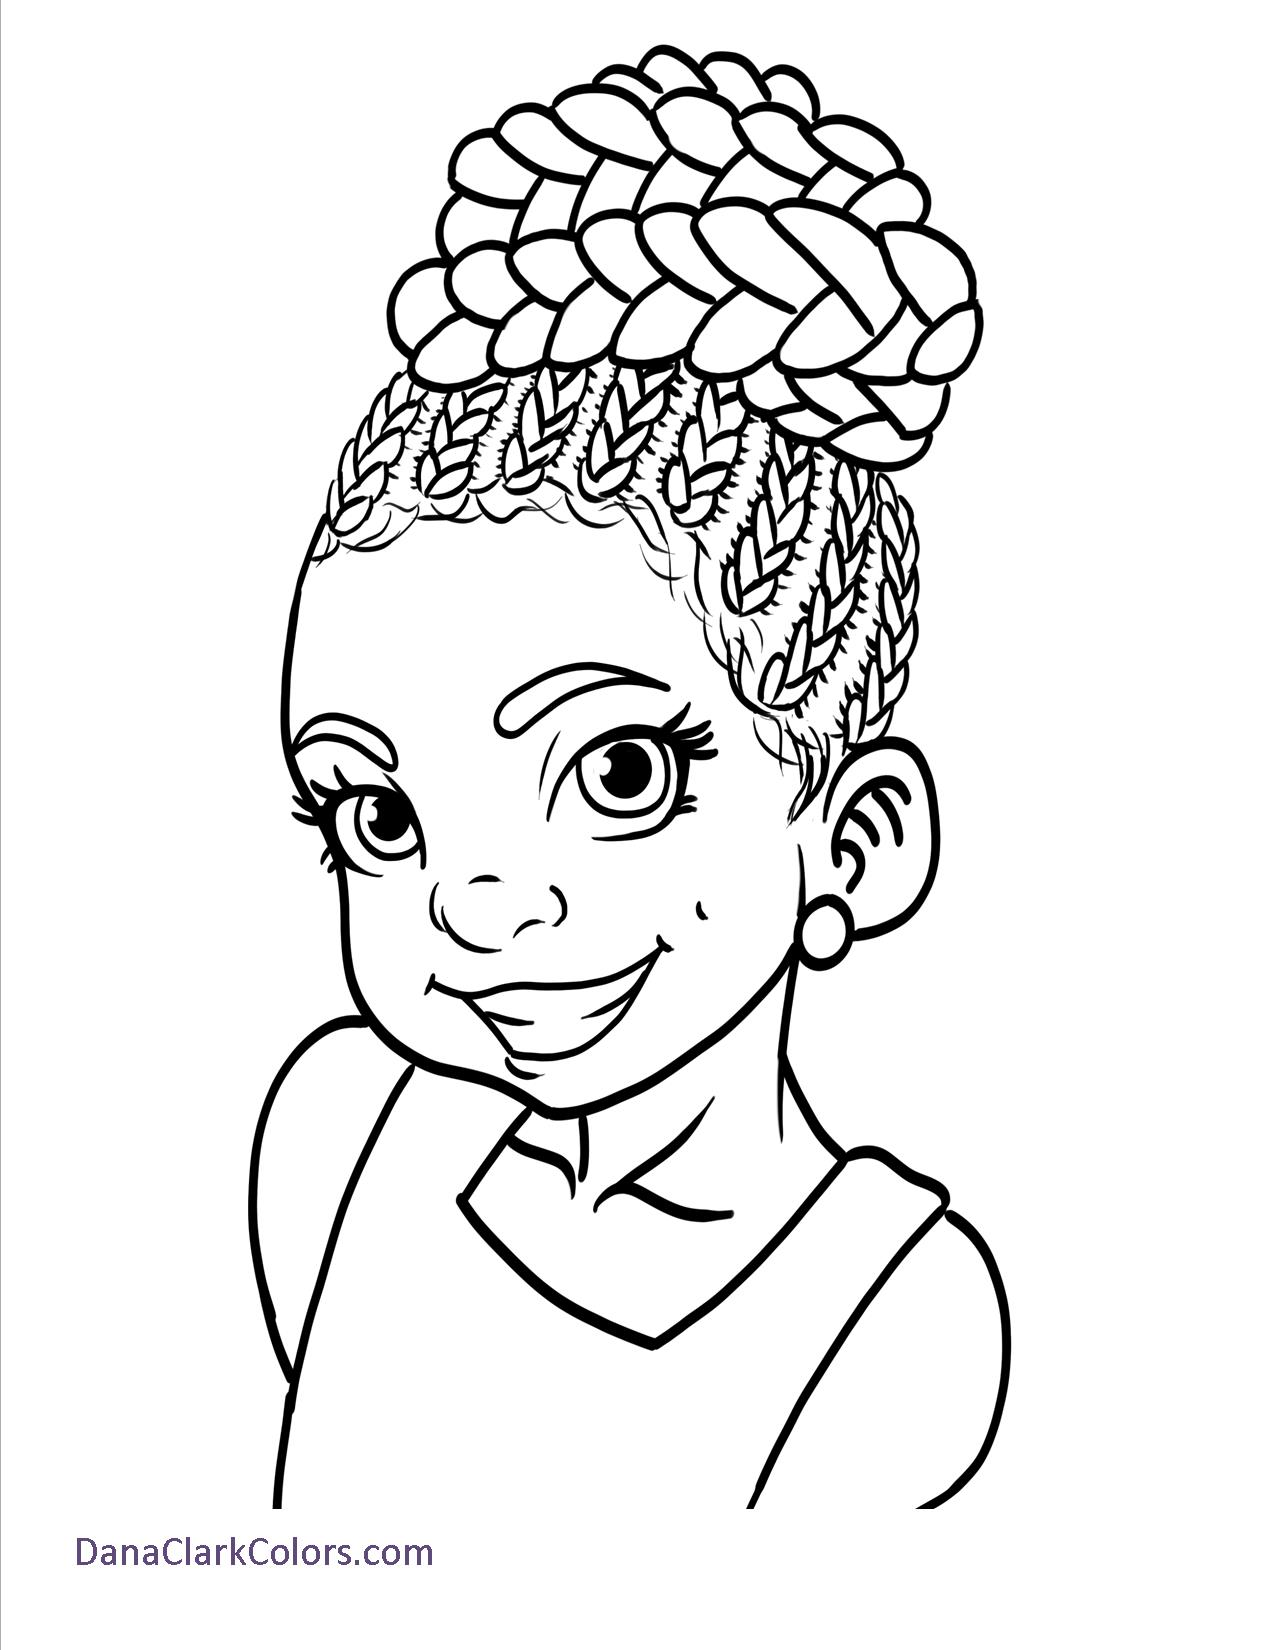 Free Coloring Pages Danaclarkcolors Com Free Colouring Page